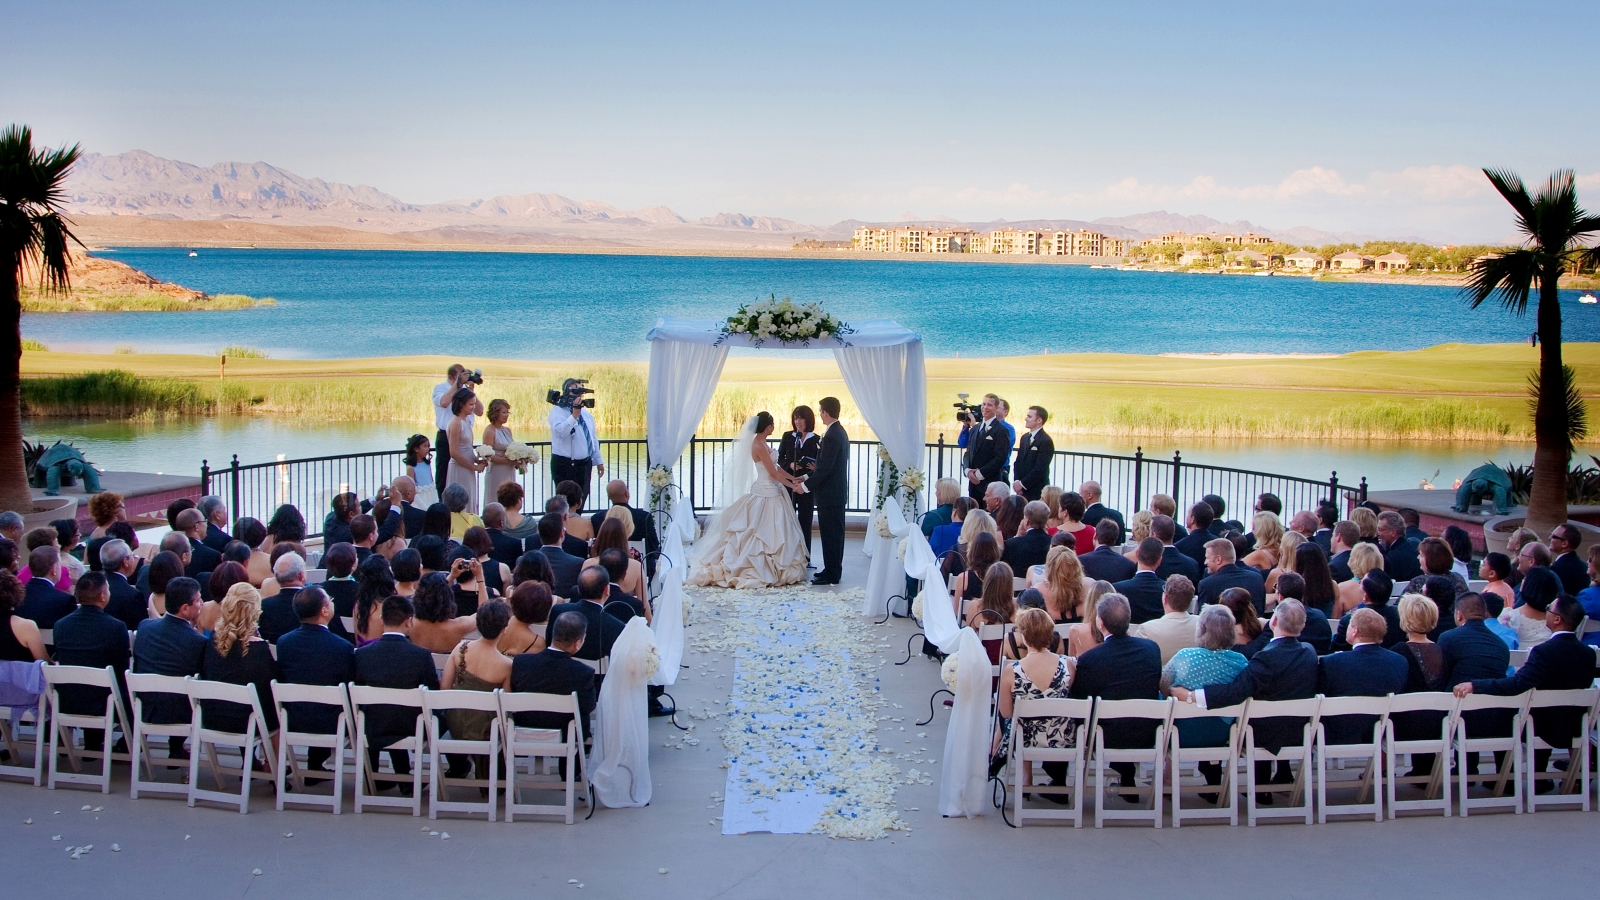 Lake Las Vegas Wedding Venues - Lotus Court